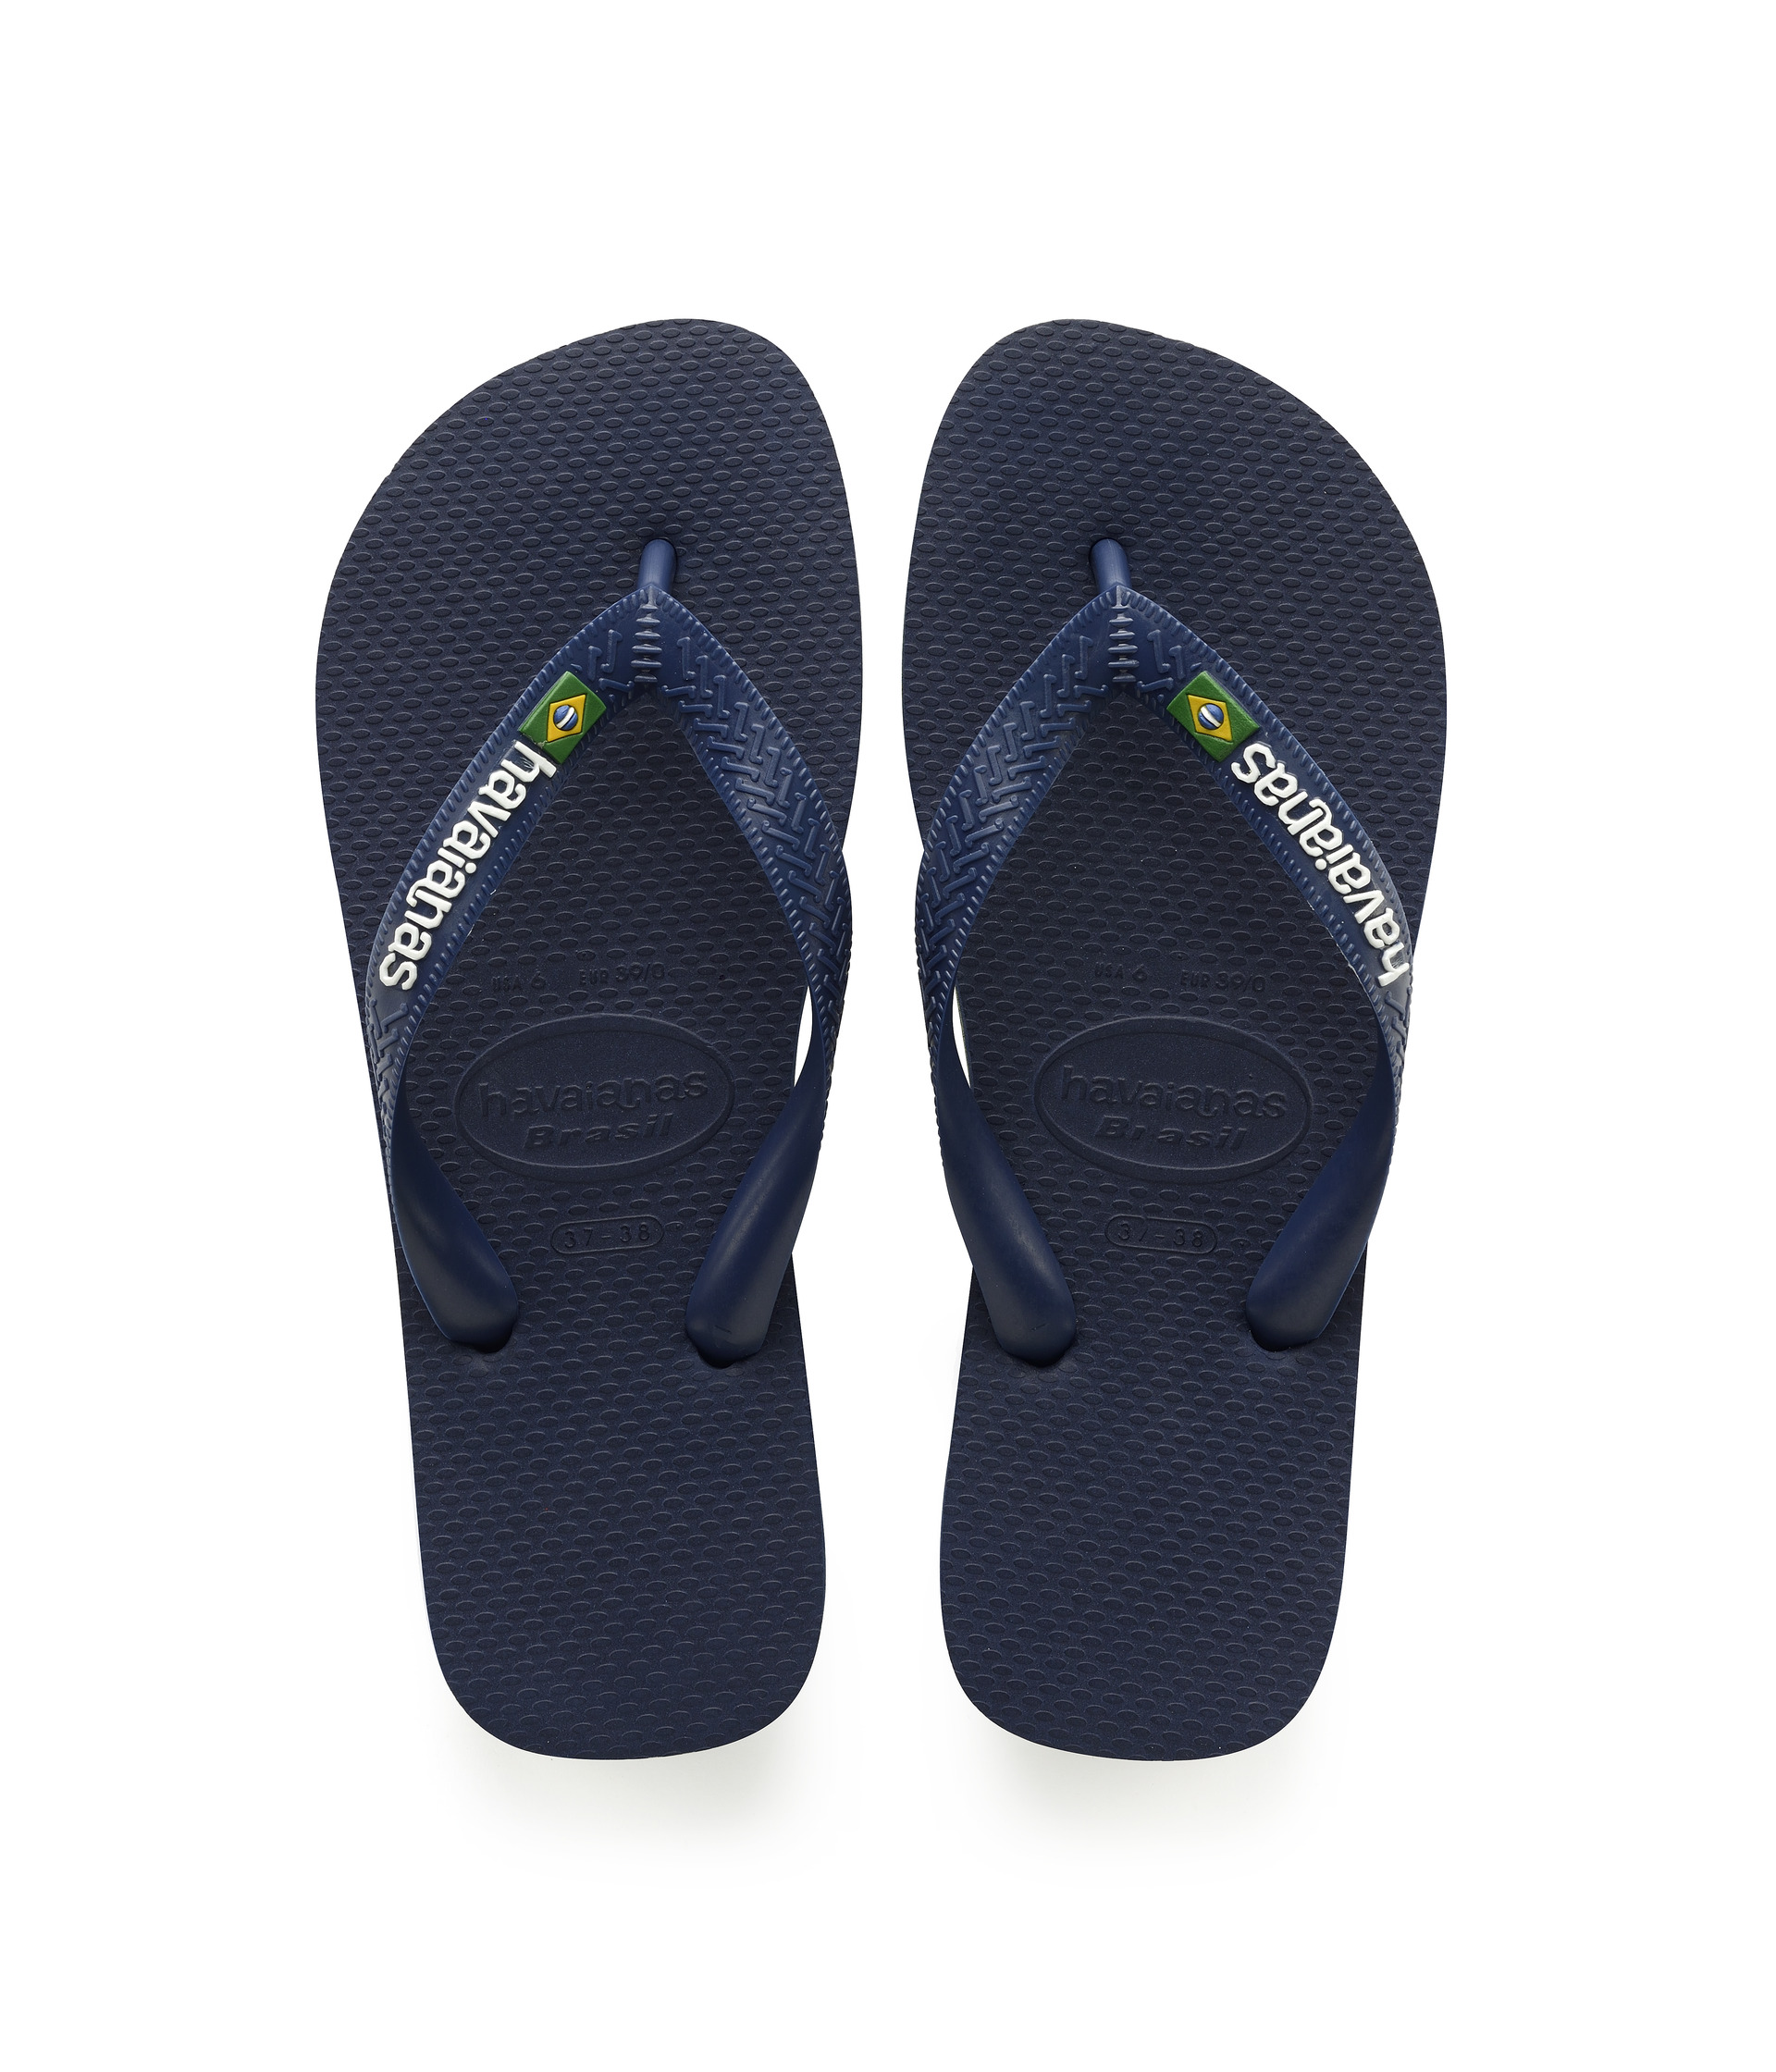 FREE SHIPPING with SKECHERS Elite™ Learn More. Flip Flops.